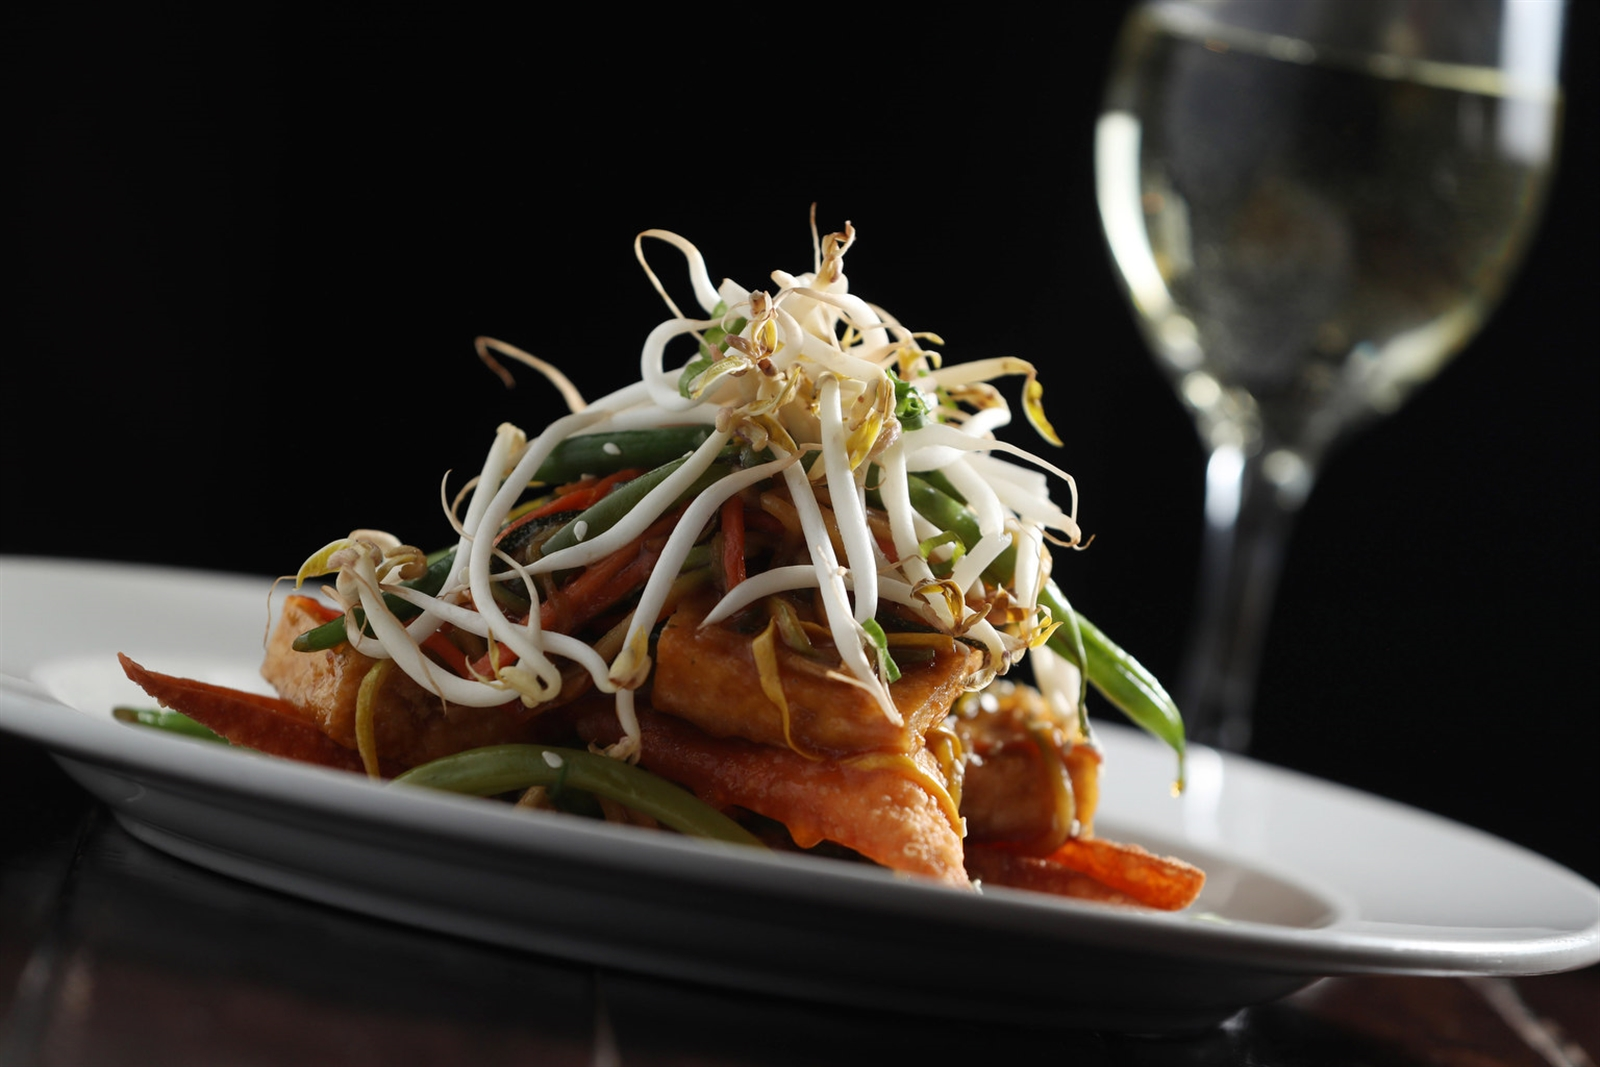 The tofu stack is fried tofu layered with bean sprouts, cabbage, vegetables and crispy wontons with sesame-soy jus.